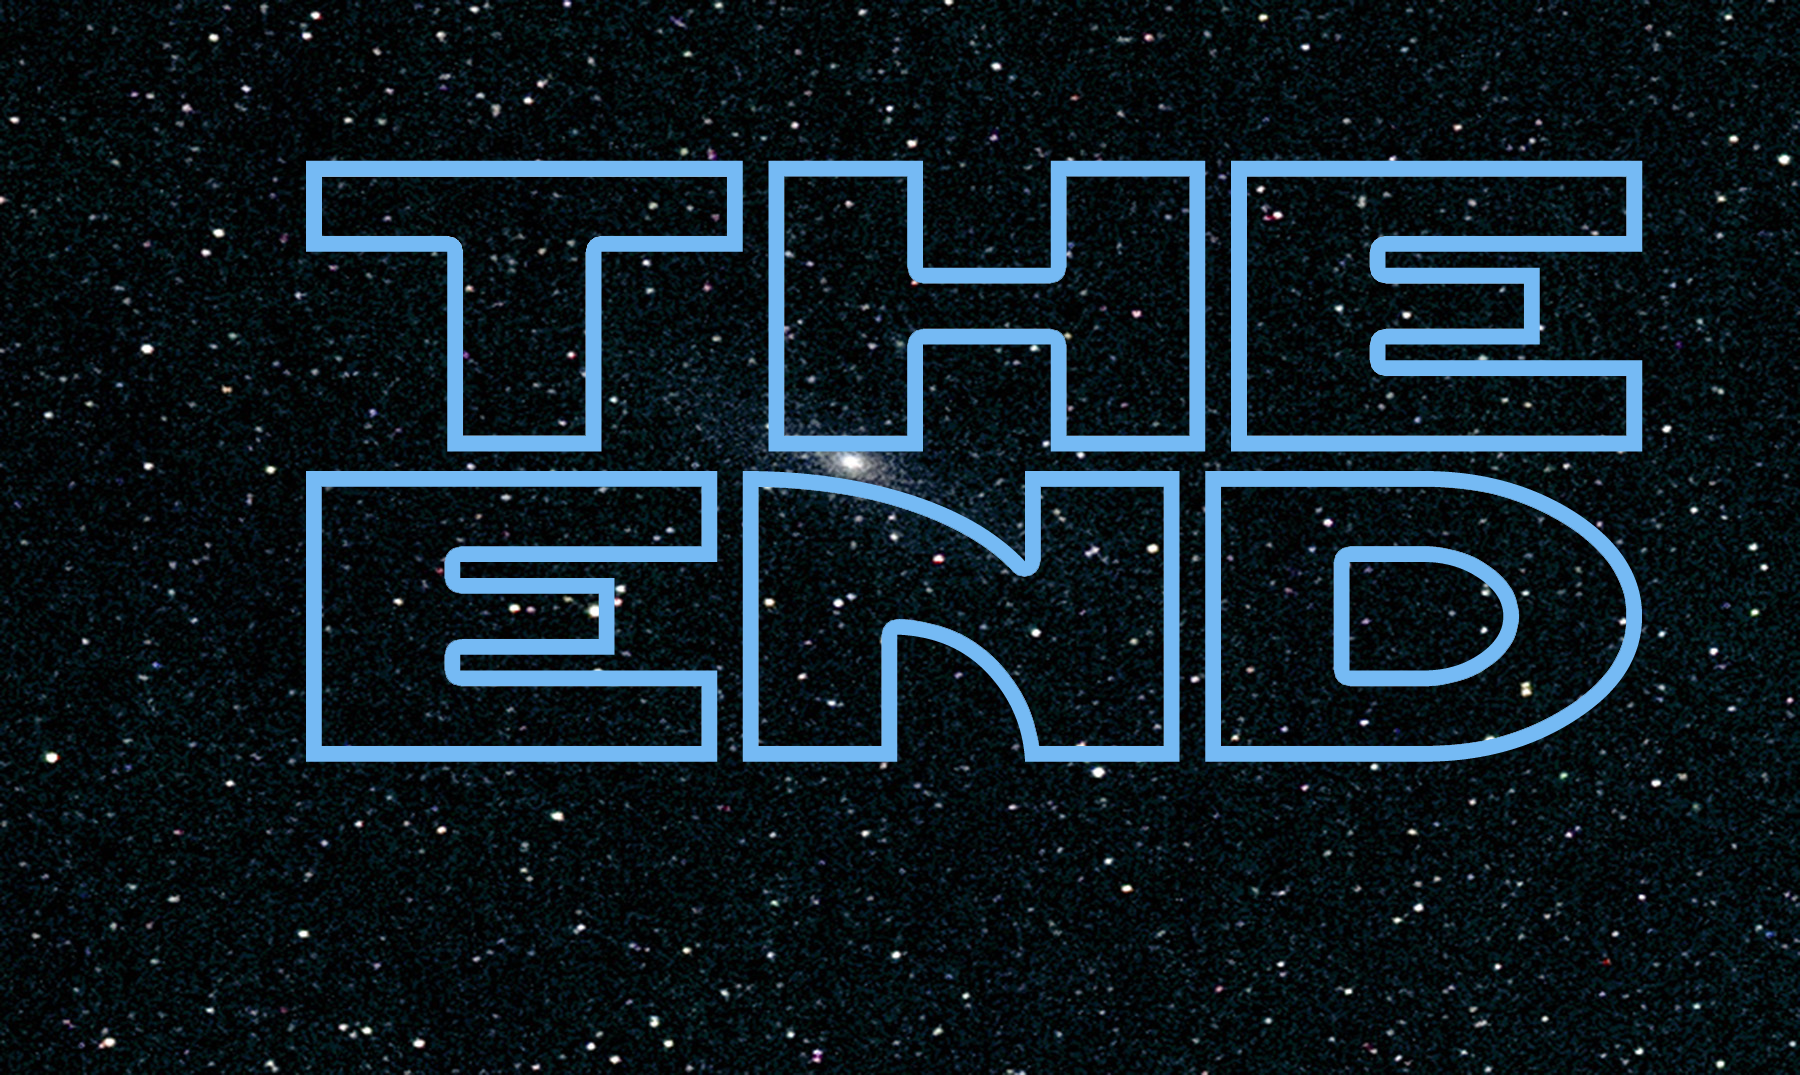 THE END VOL. XXVIII